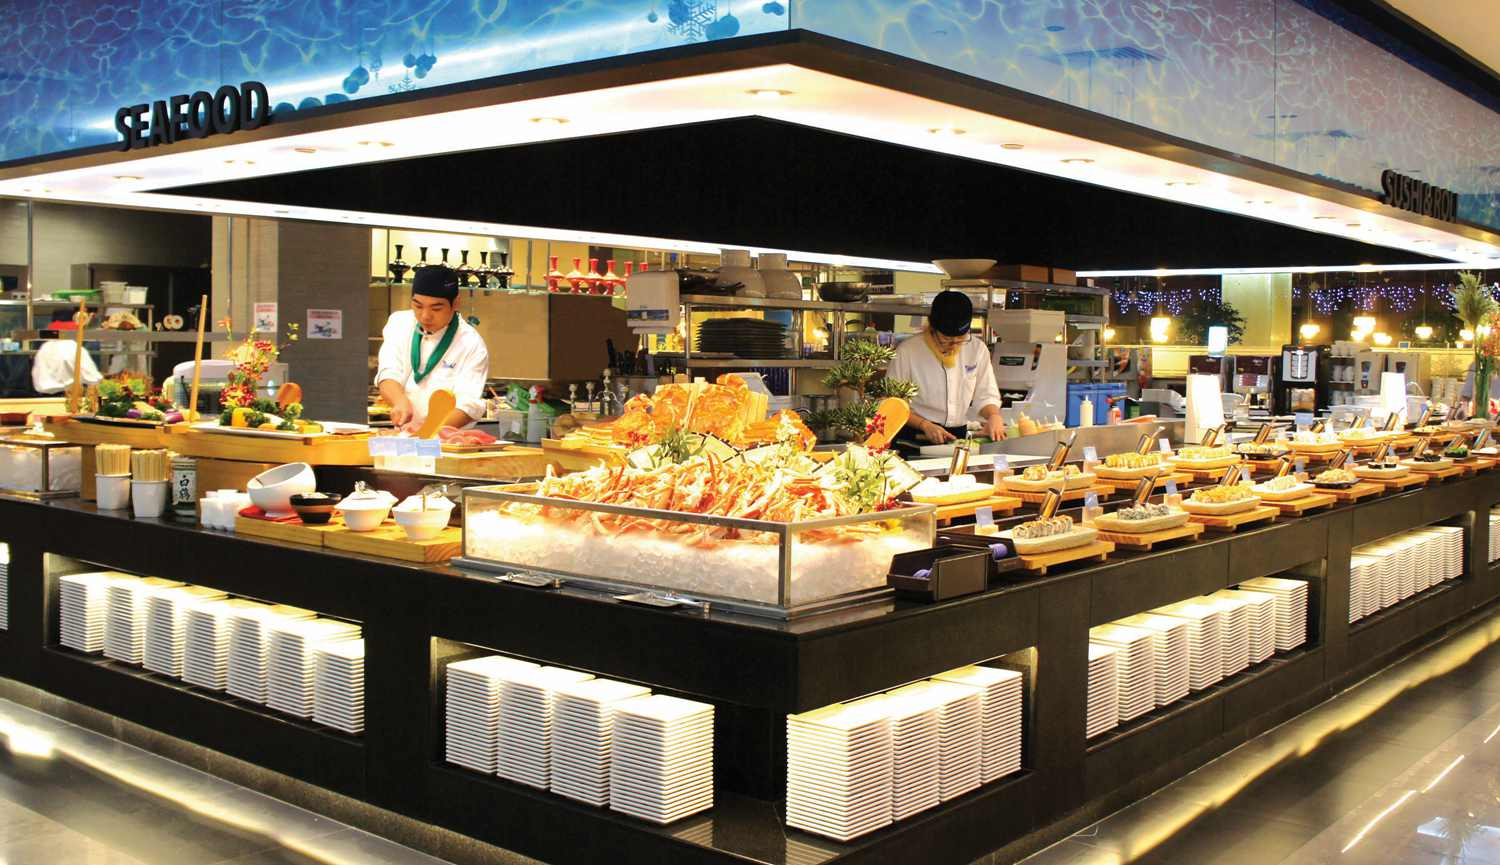 Best seafood buffet restaurants near me for Fish restaurants near me